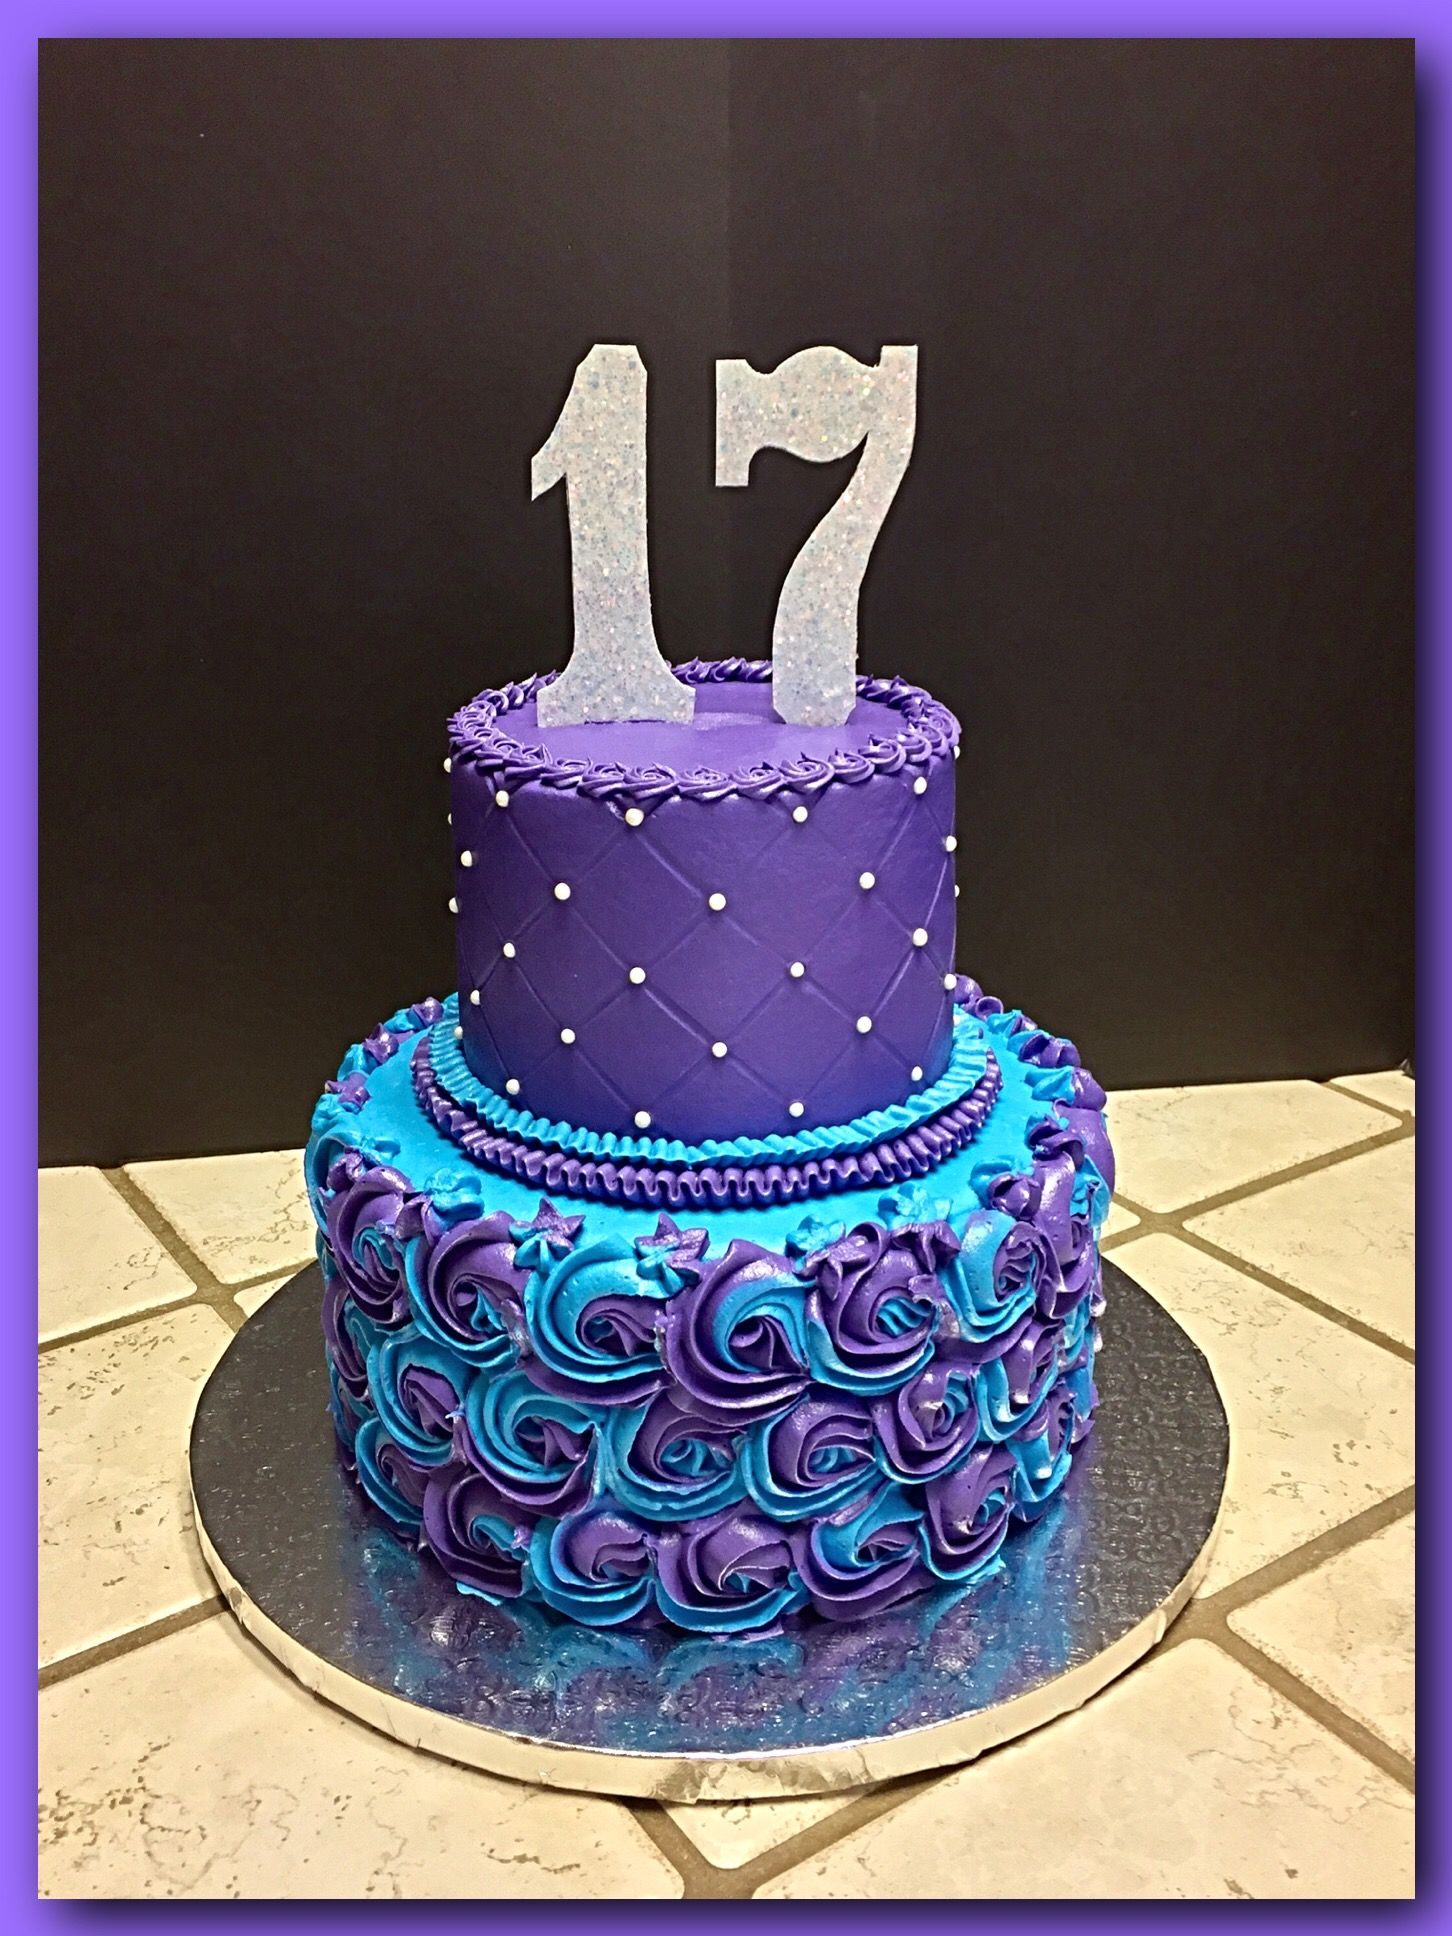 Purple And Turquoise Quiltedrosette Cake The Great Cakery In 2019 16 Birthday Cake 18th